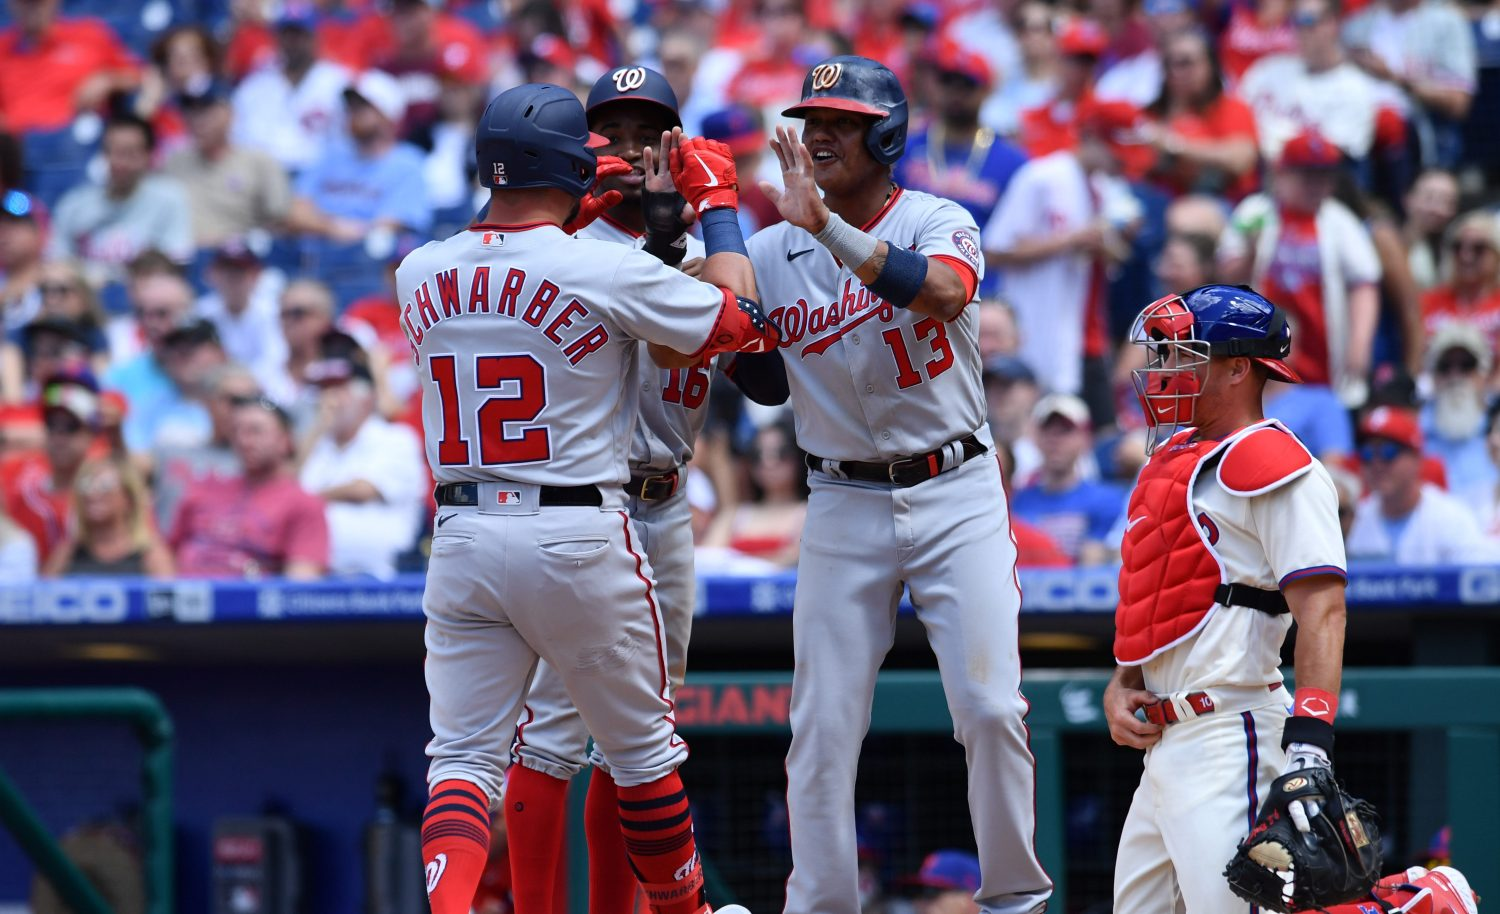 Phillies' Pitching Blows Three Crucial Leads In 13-12 Loss To Nationals